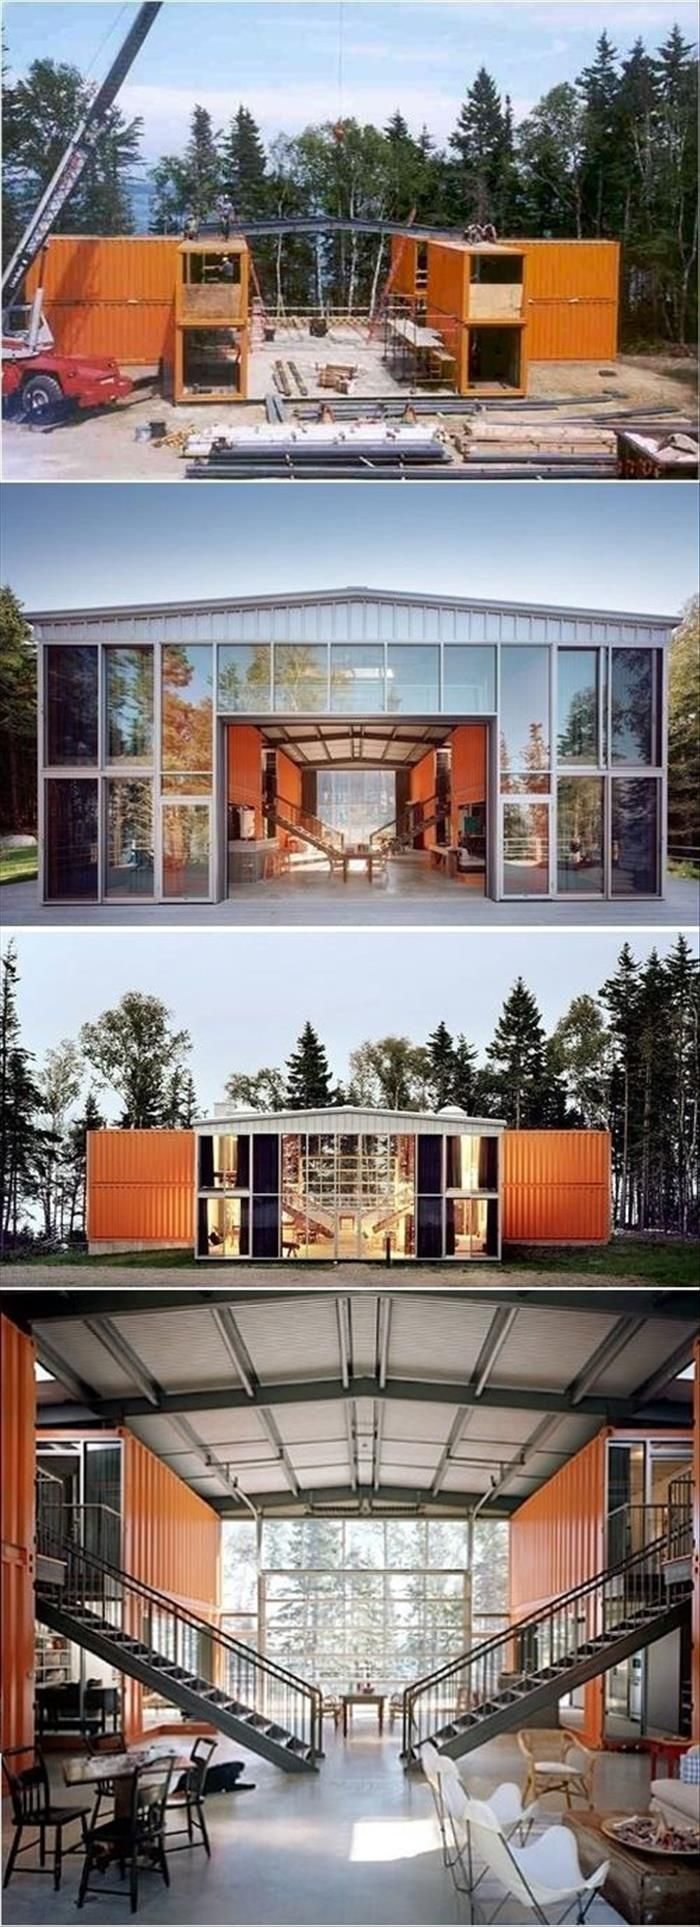 How to build your own shipping container home hus och house Build your own container home